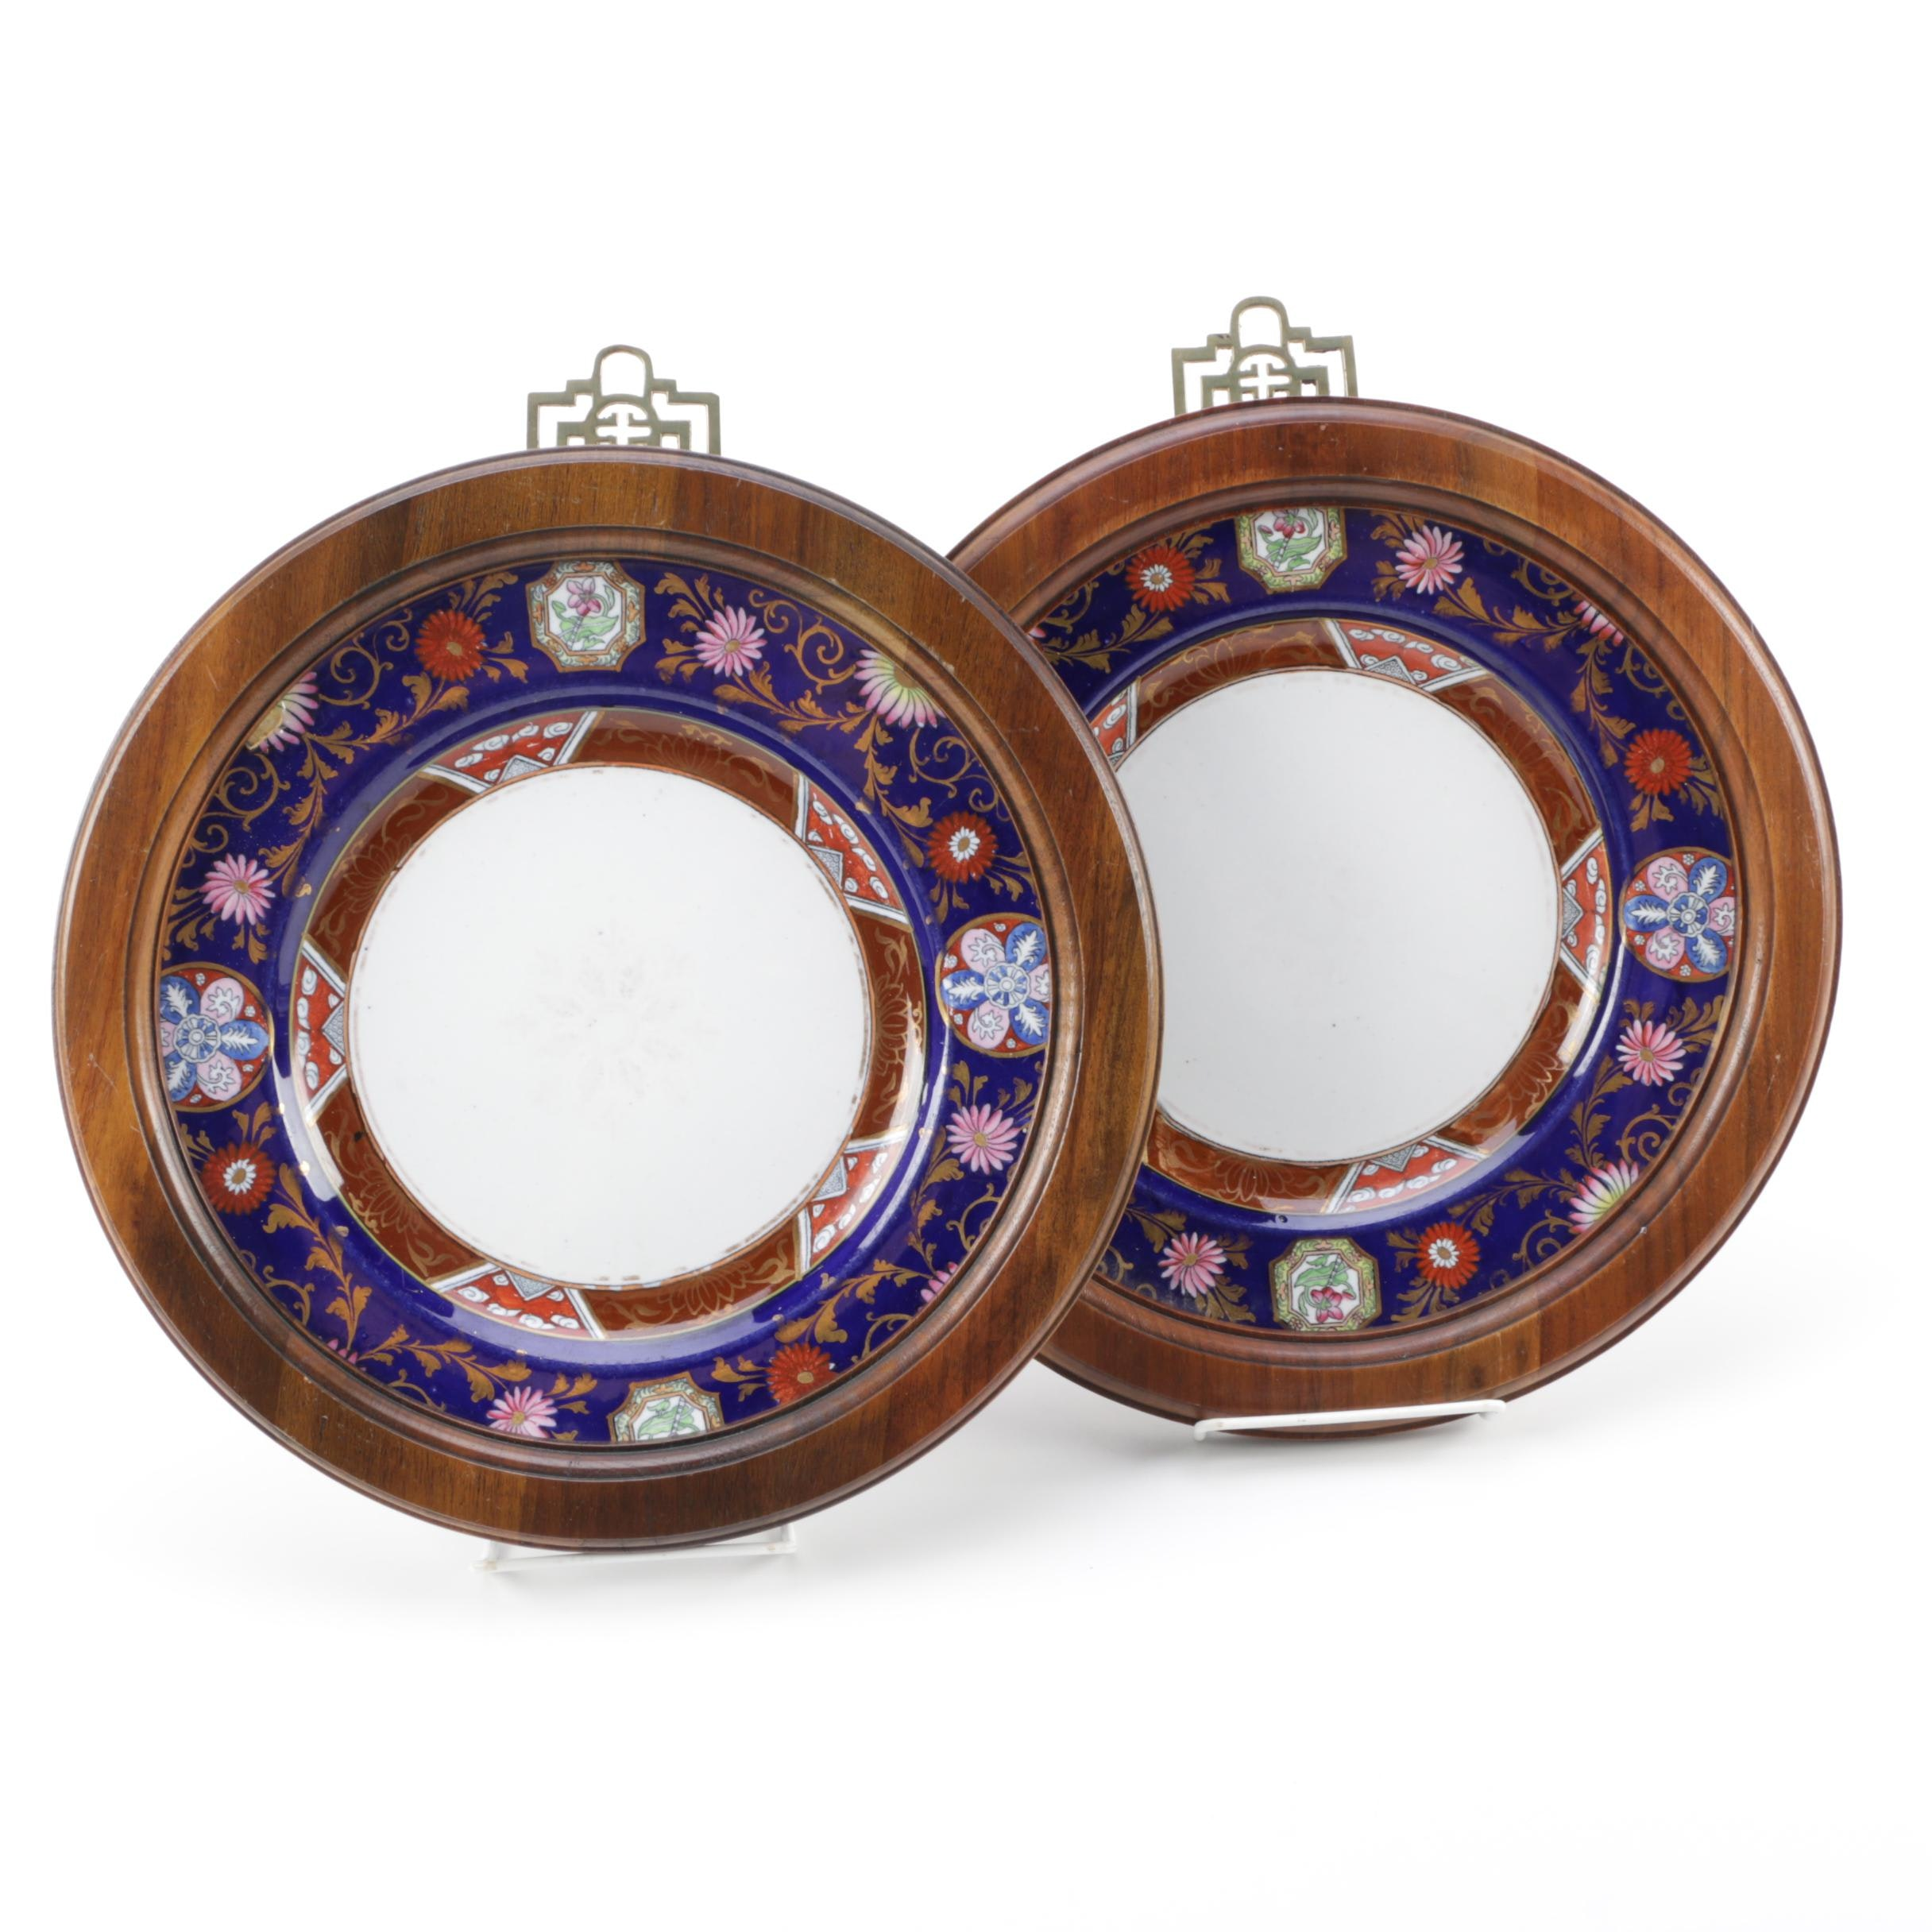 Decorative Ceramic Ironstone Plates with Wooden Frames